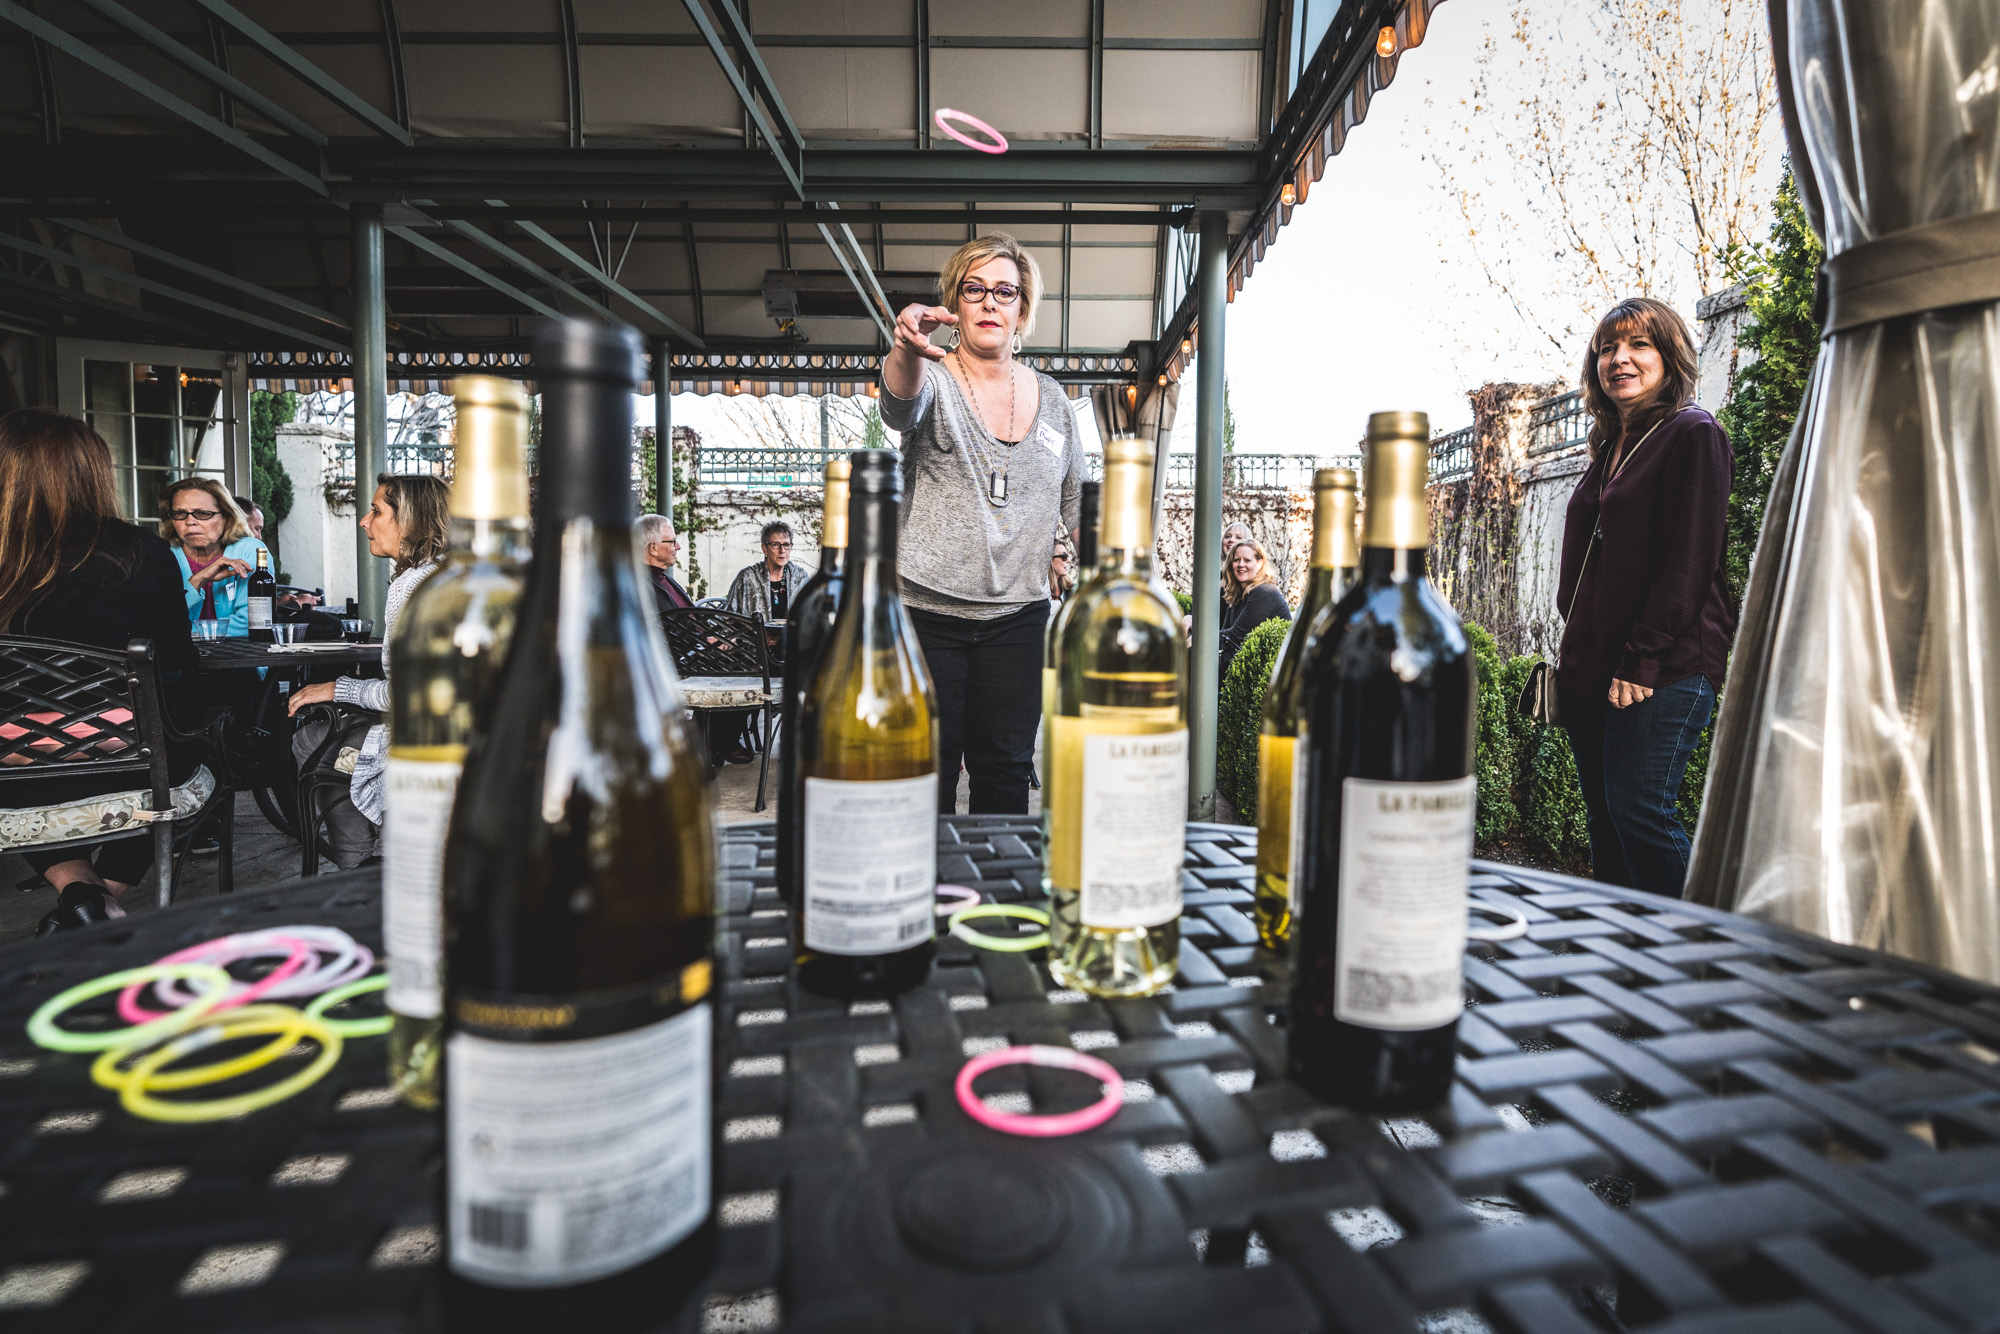 Color photo of a woman tossing rings at bottles of wines on a table during an Autism Society of Colorado Wine Competition fundraiser in Denver.